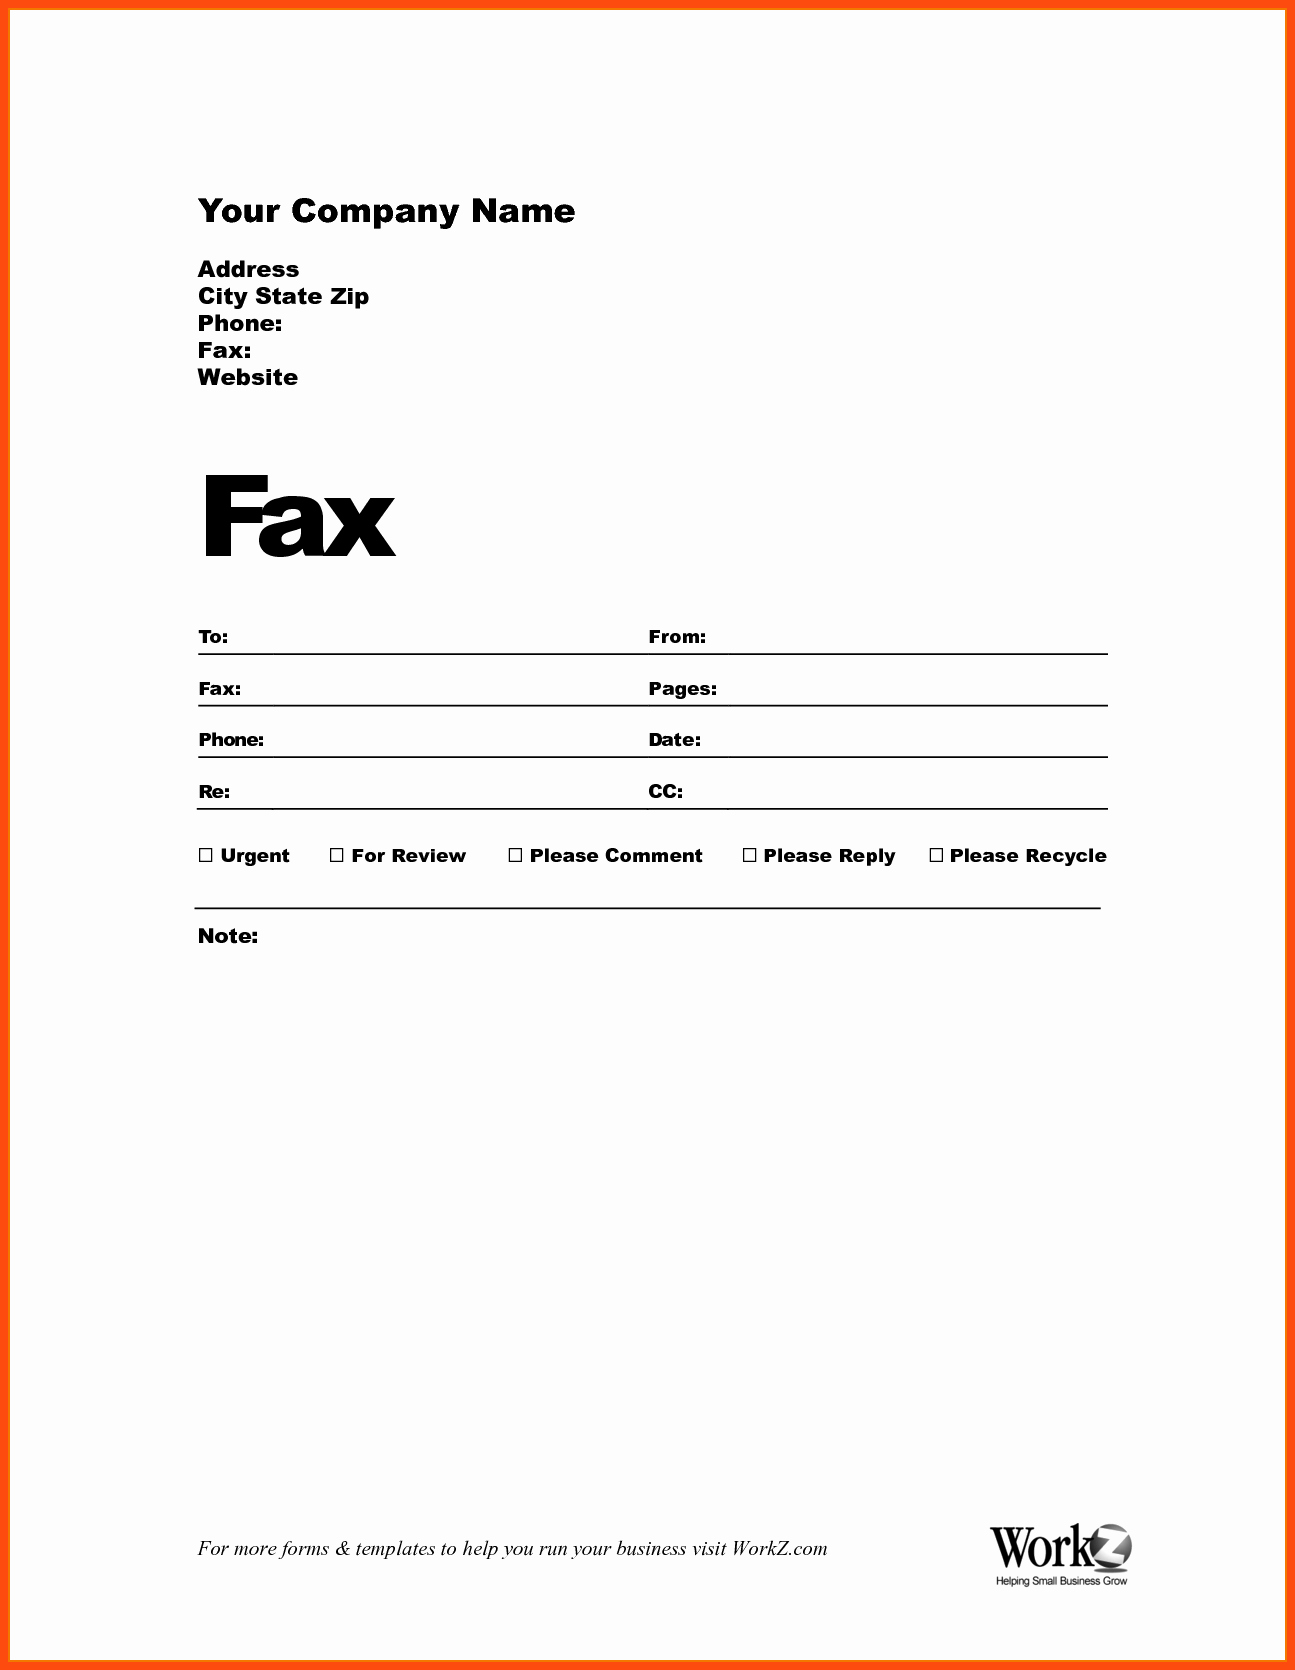 Free Printable Fax Cover Page Inspirational How to Fill Out A Fax Cover Sheet